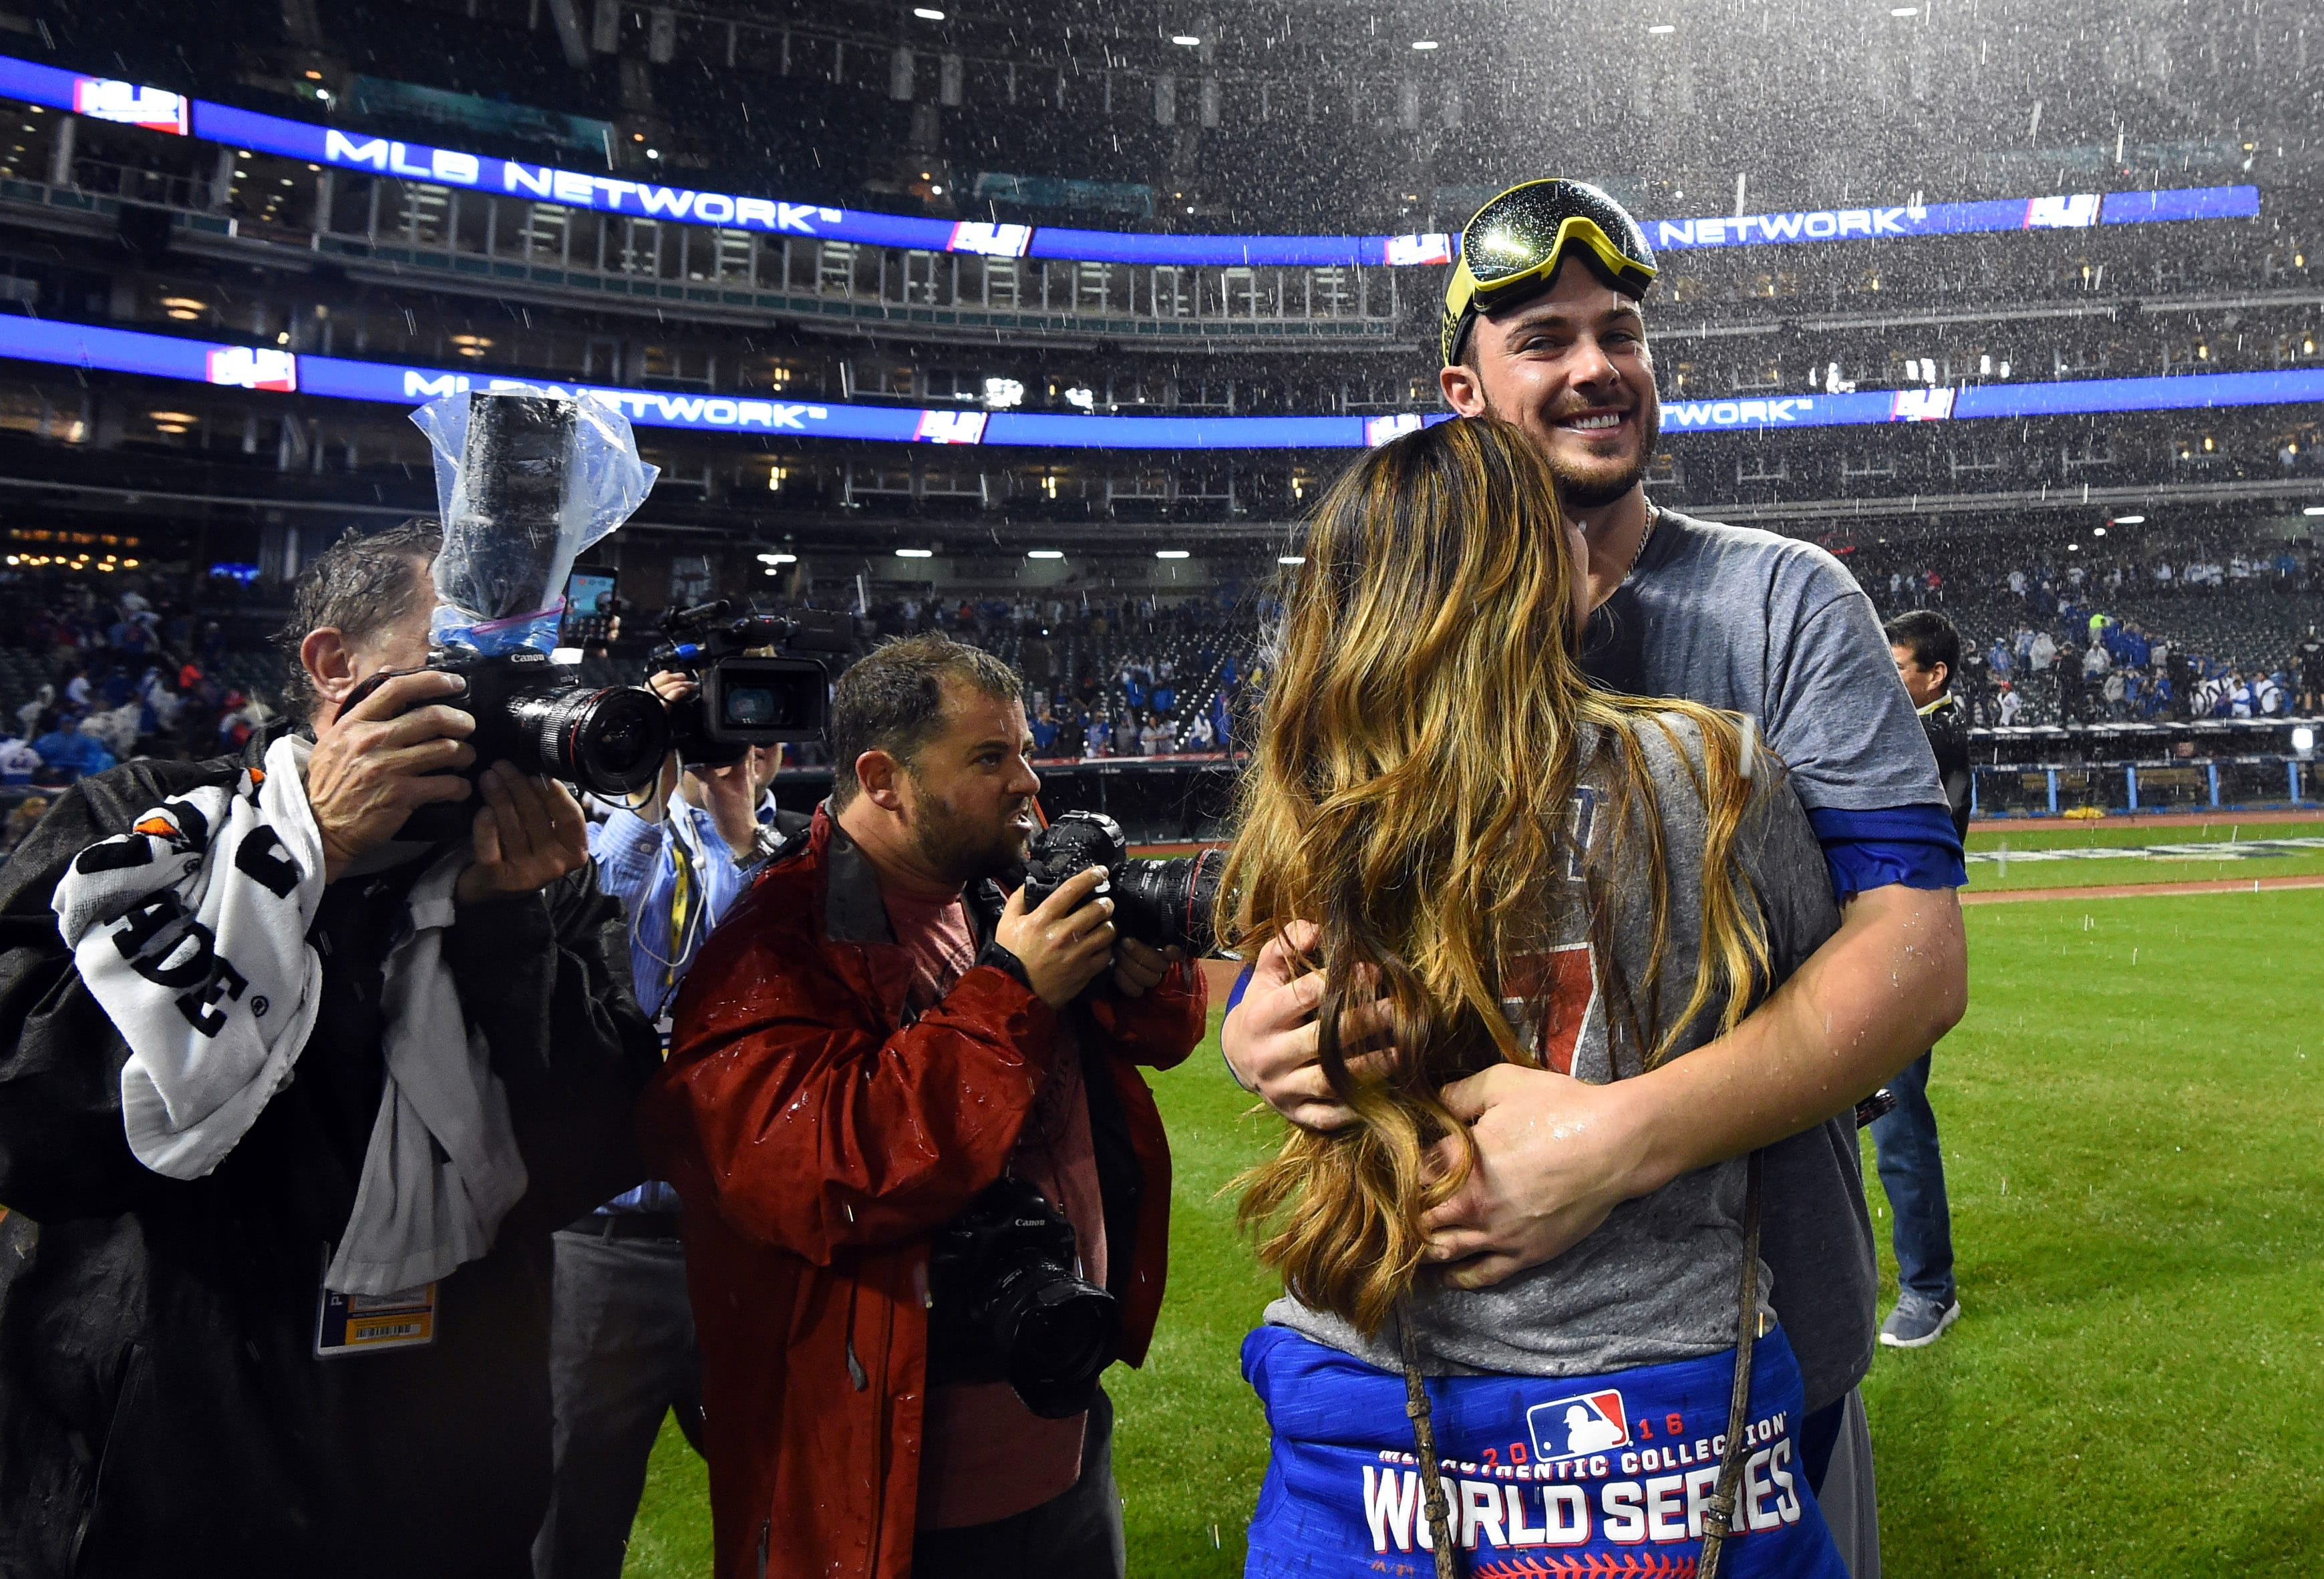 Kris Bryant celebrates winning the World Series with his fiance, who helps keep him grounded at home. (Tommy Gilligan/USA TODAY Sports)